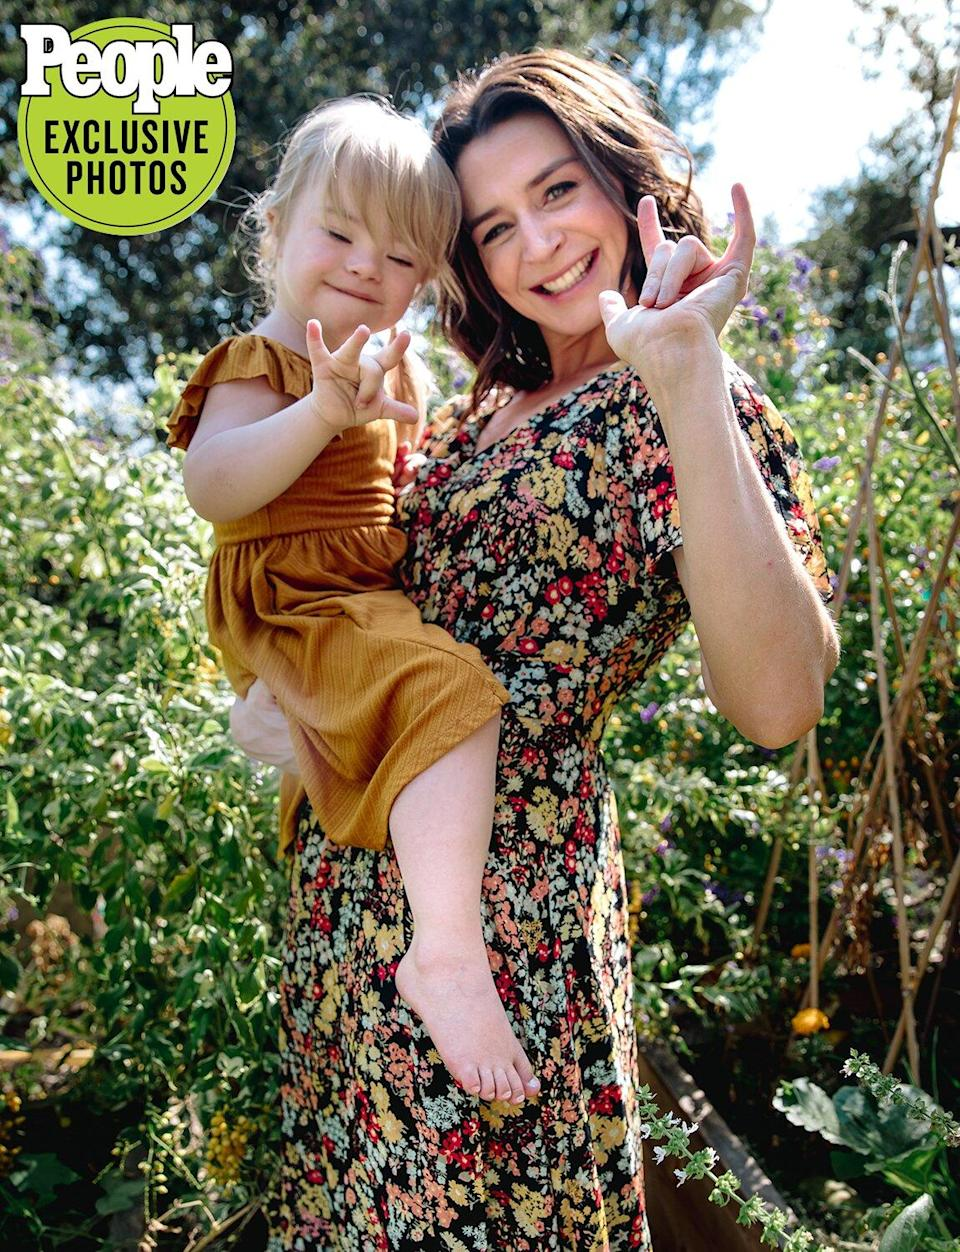 Caterina Scorsone Recalls Moments After Delivering Daughter, Who Has Down Syndrome: 'I Was Scared'